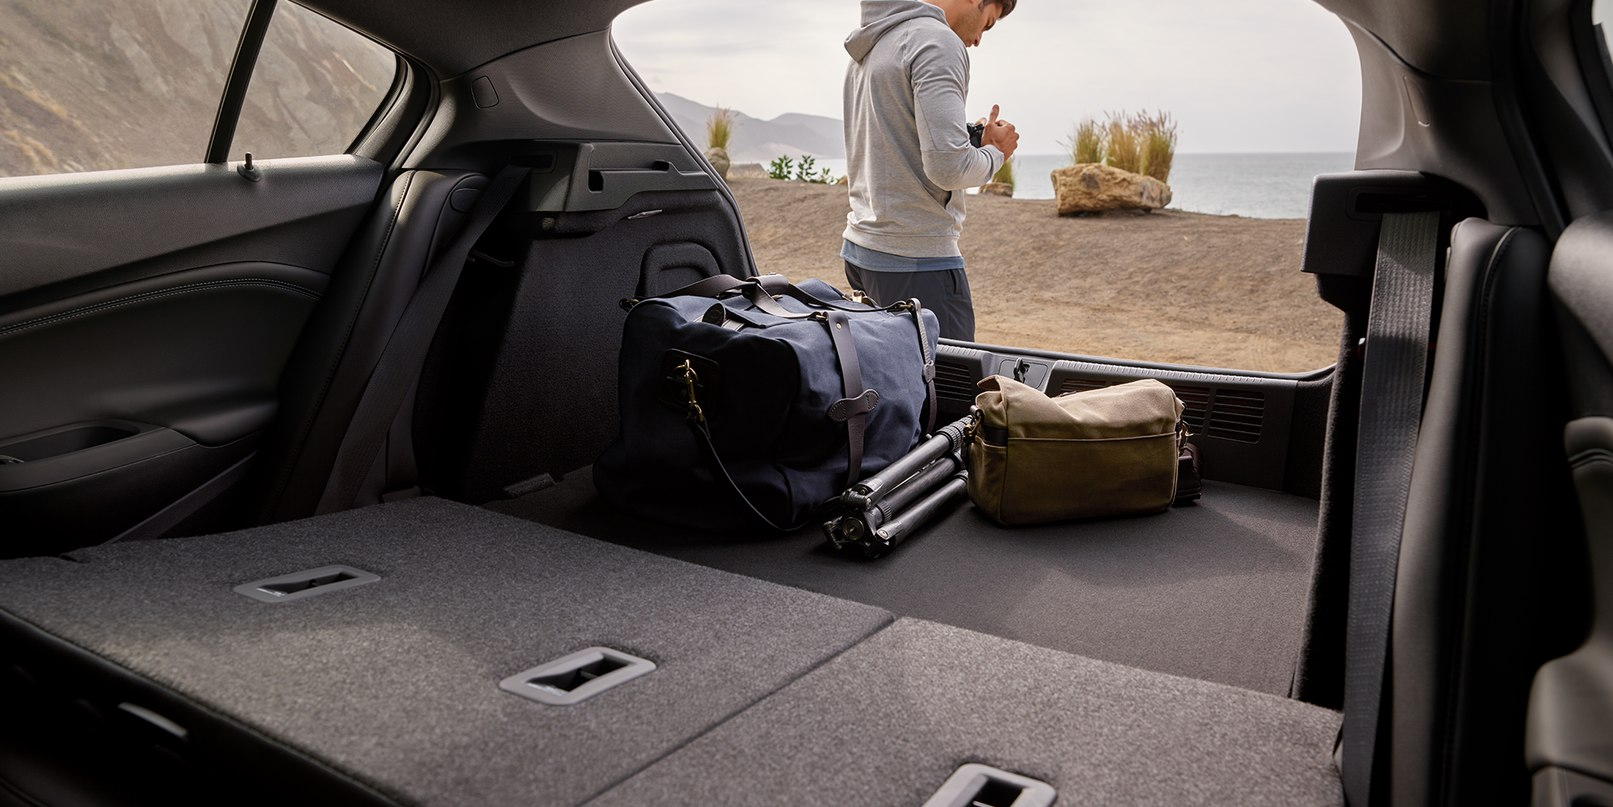 Spacious Room in the 2019 Cruze